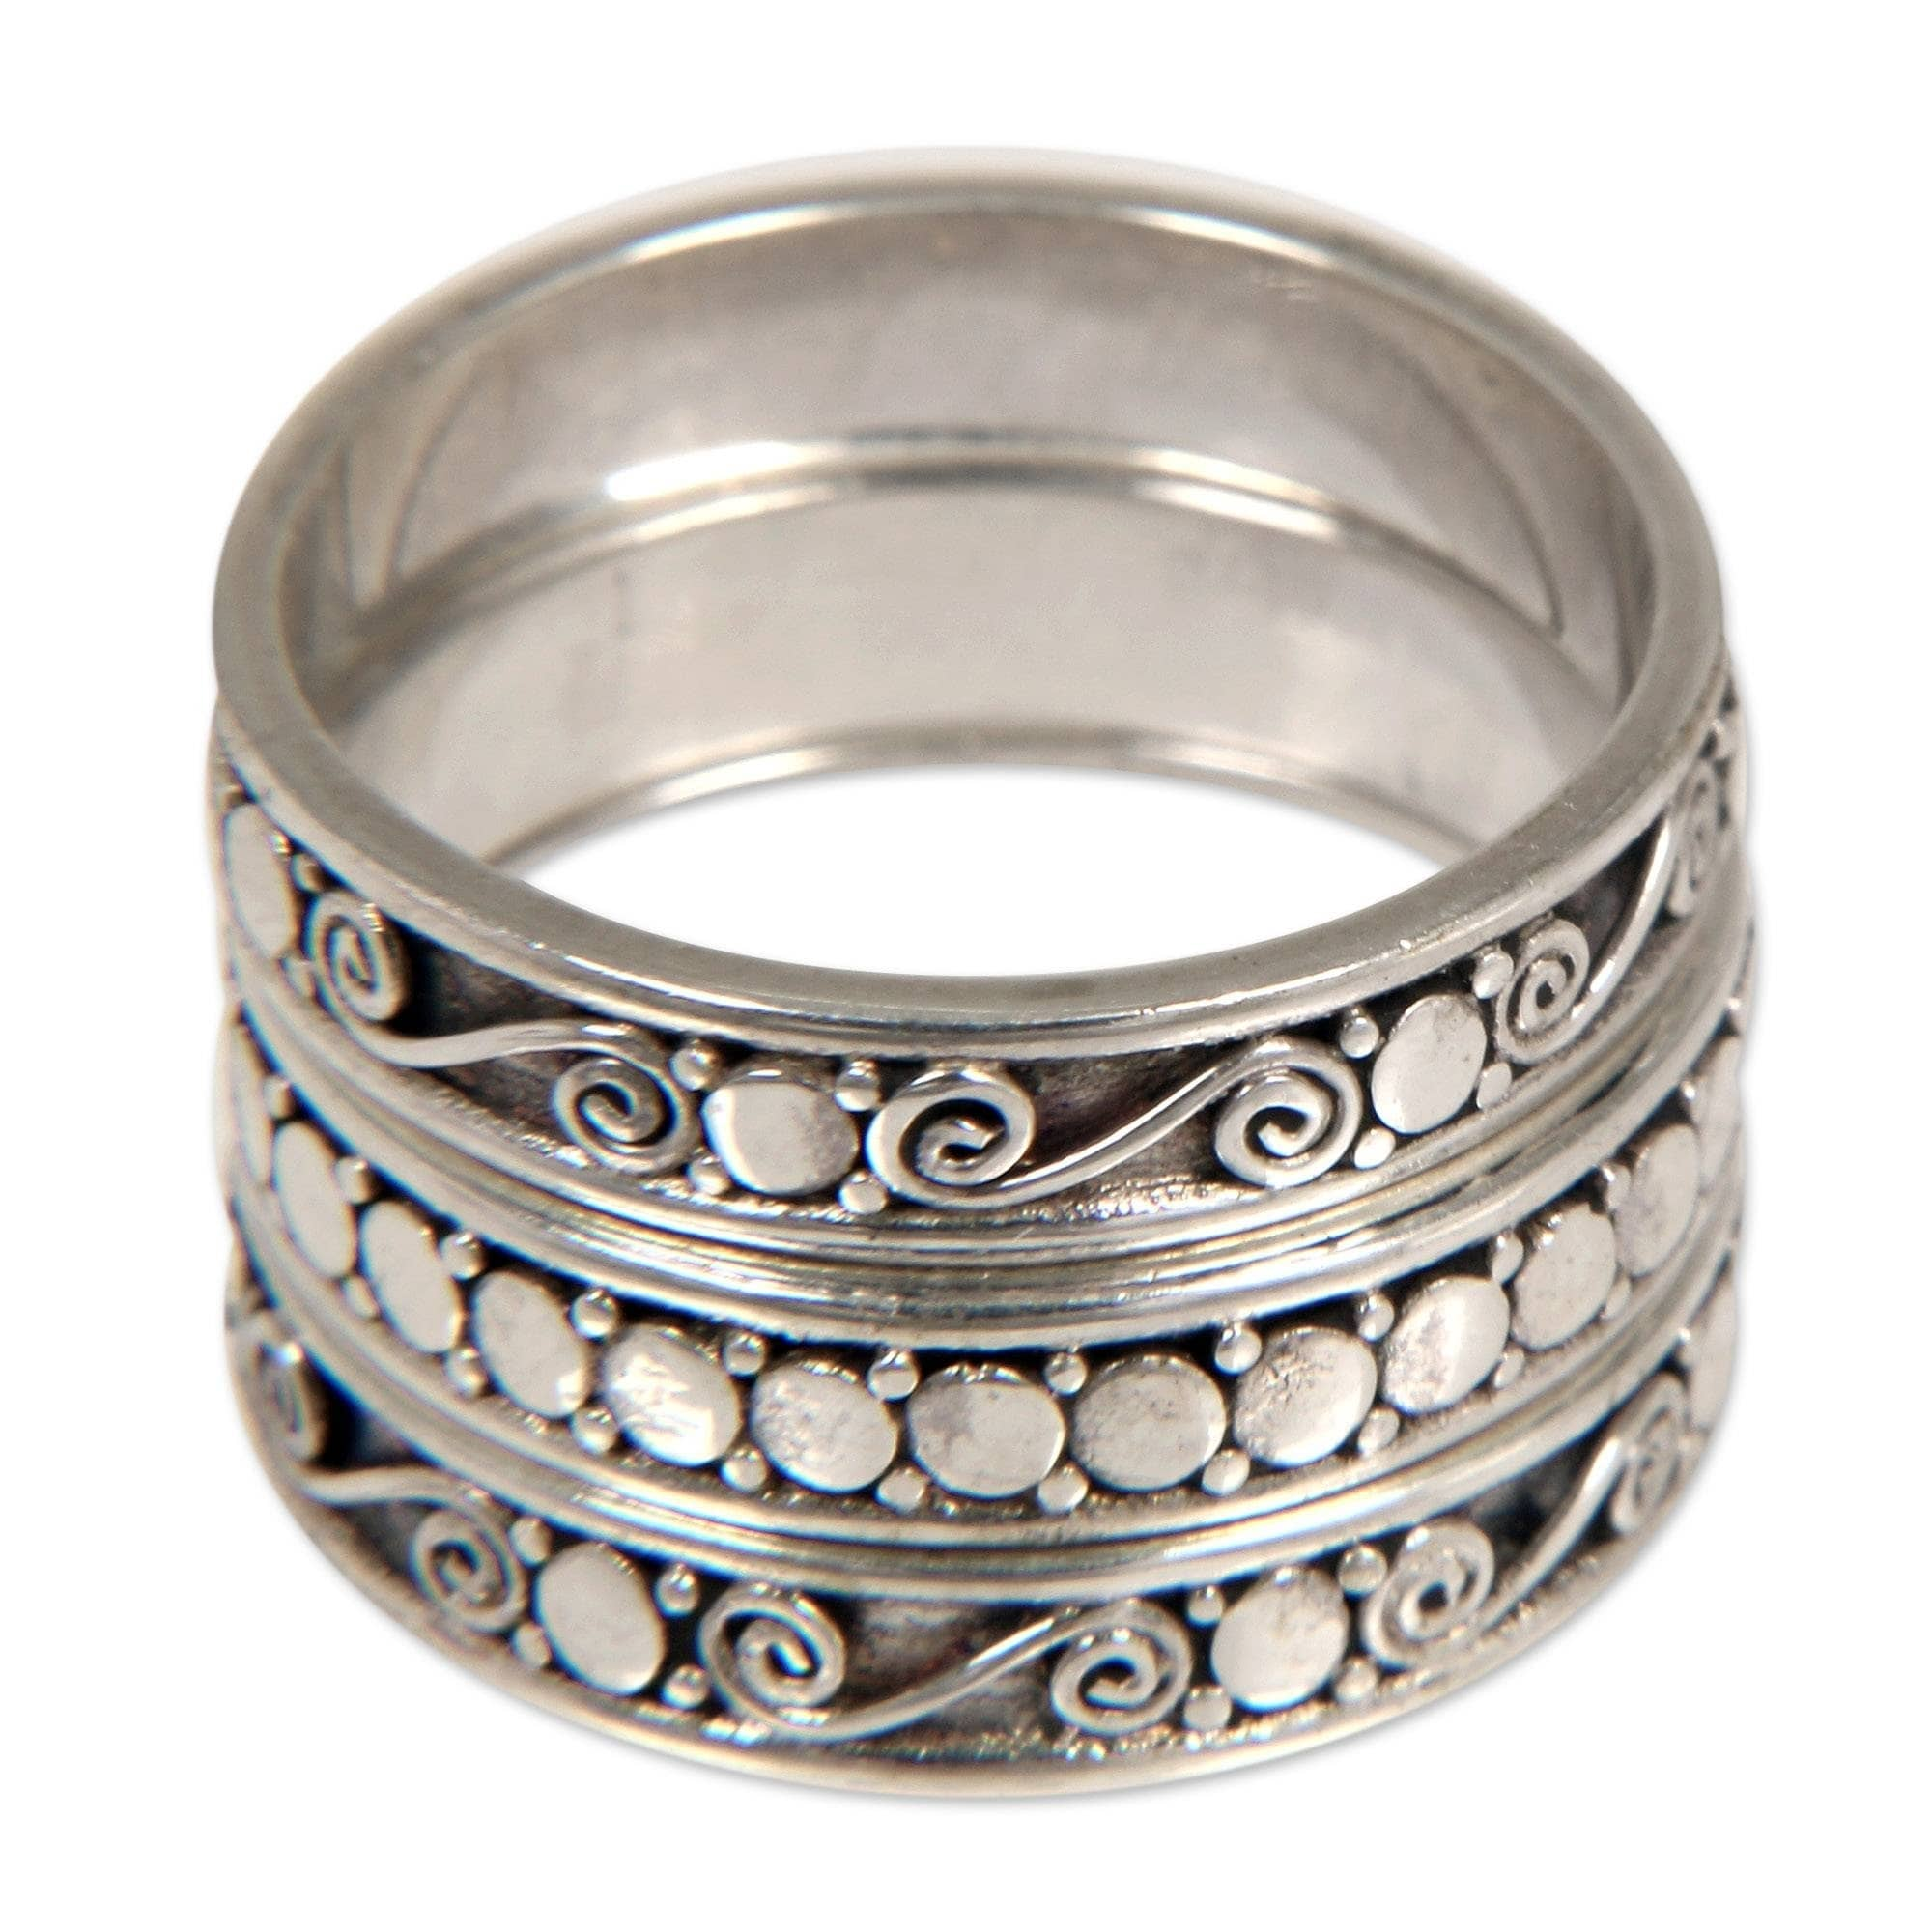 4e71e7c6f0c6f Handmade Traditional Balinese 925 Sterling Silver Band Stacking Ring  (Indonesia)